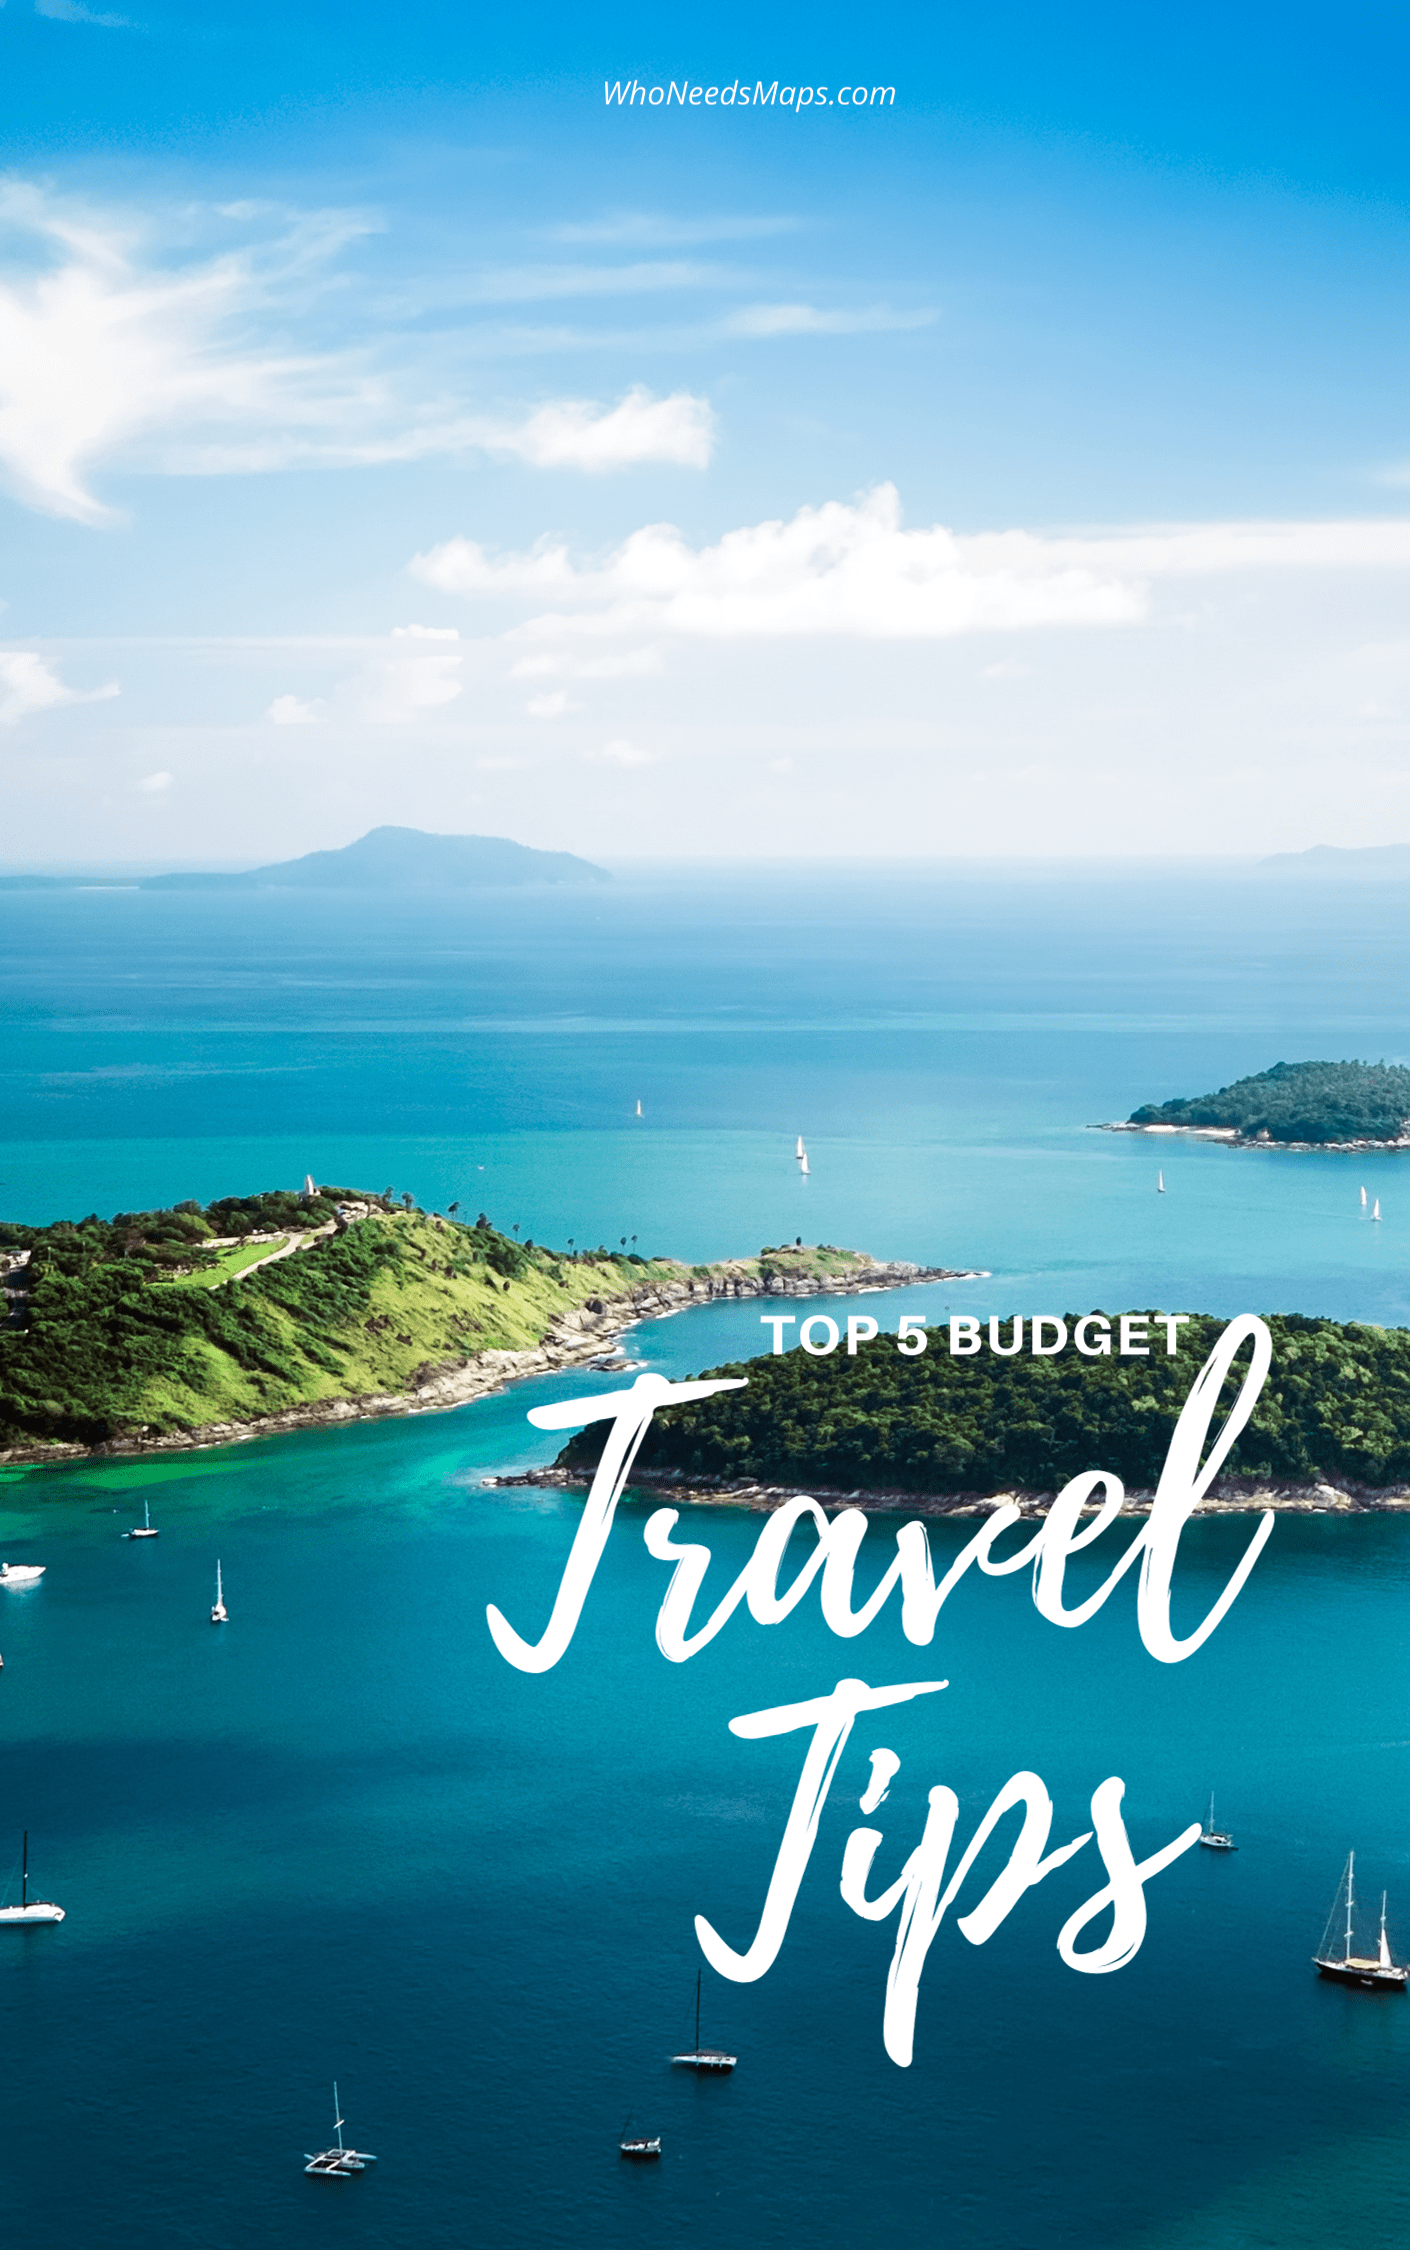 5 Budget Travel Tips You Can't Afford To Miss